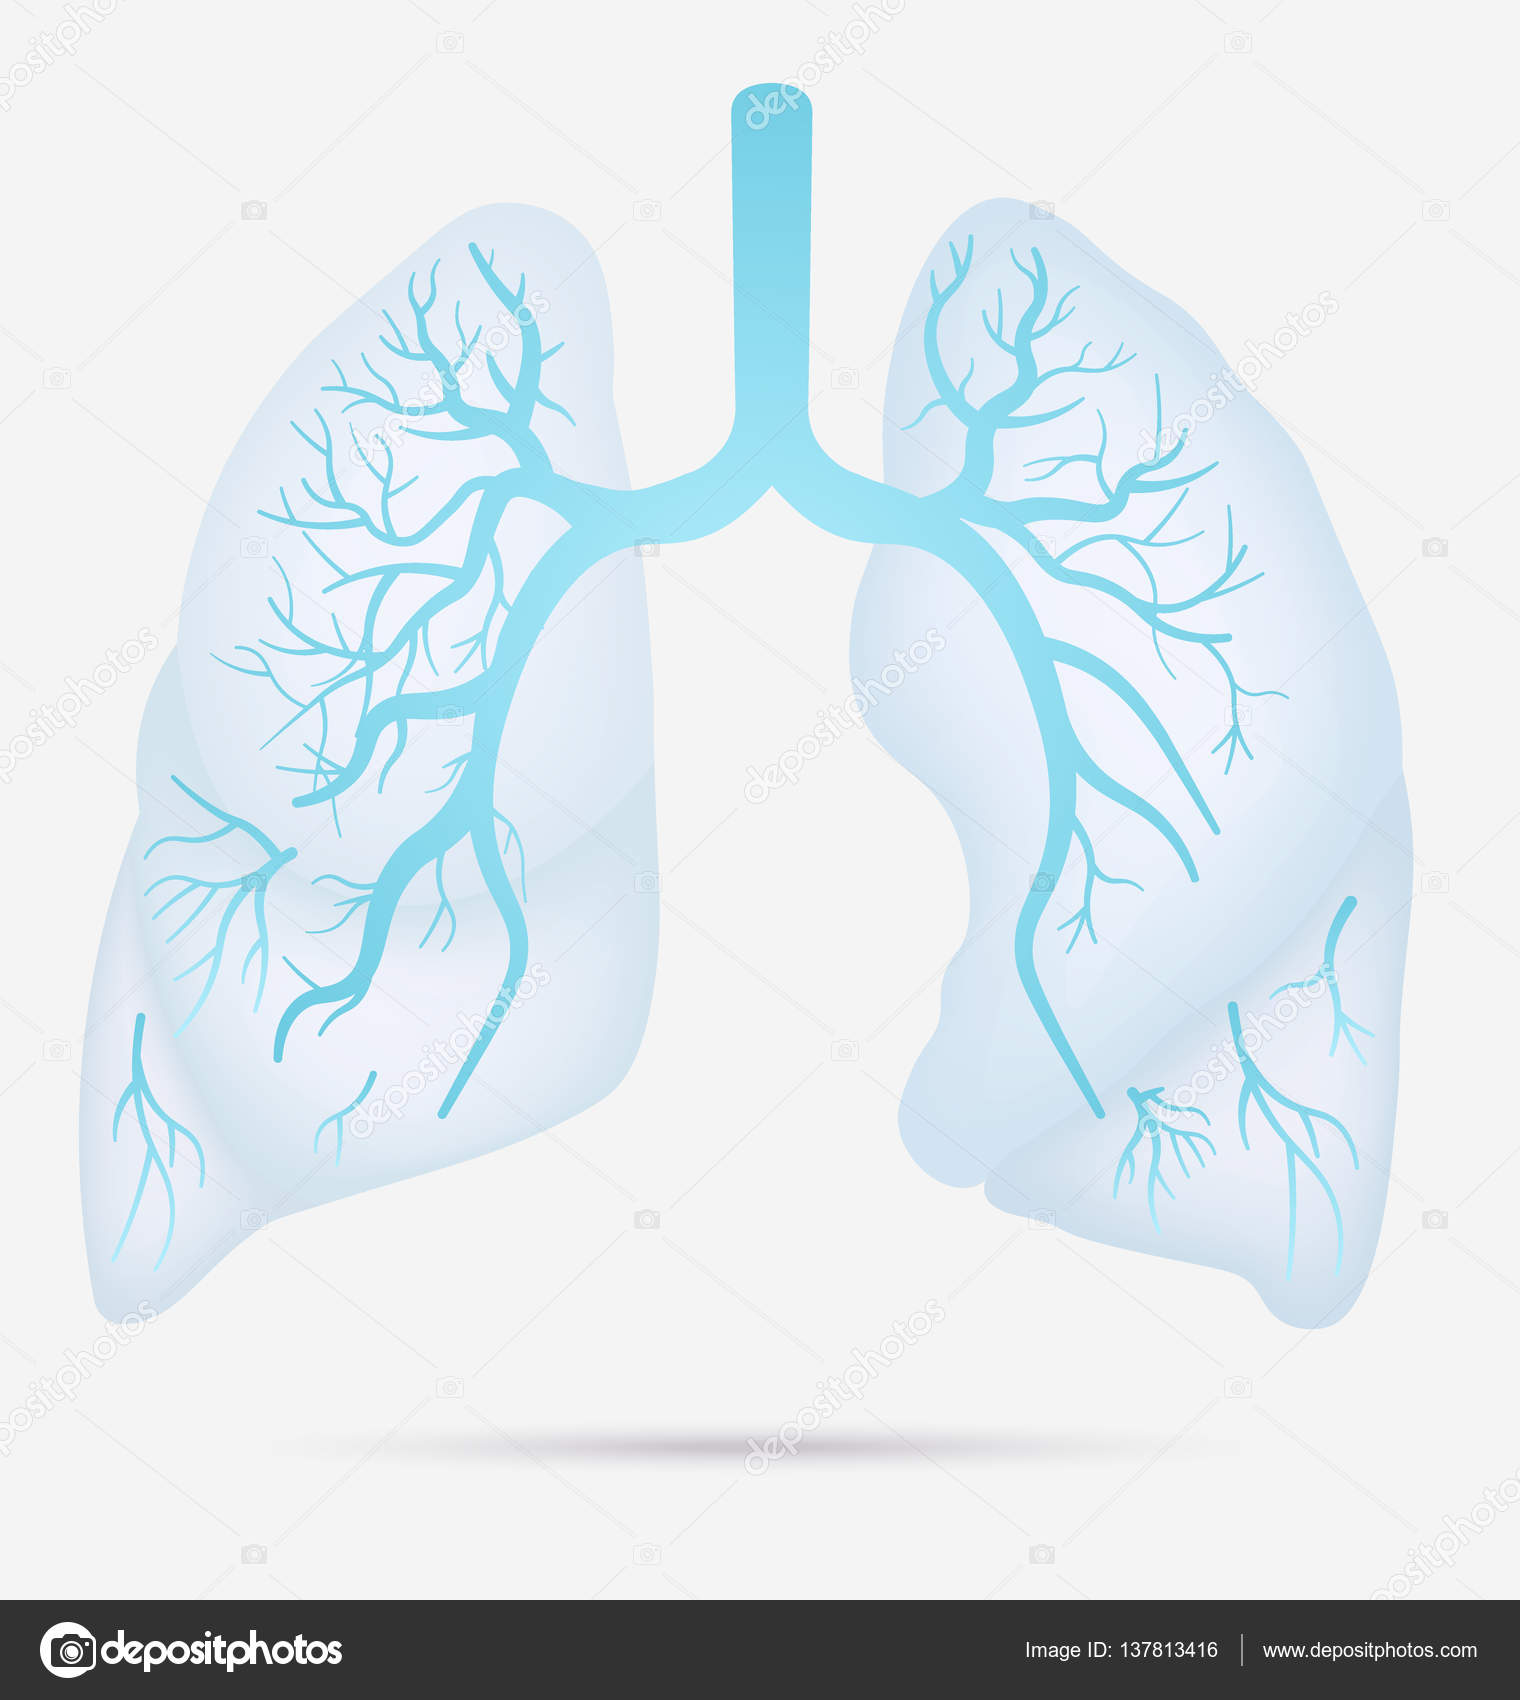 Human lungs anatomy for asthma tuberculosis pneumonia lung cancer human lungs anatomy for asthma tuberculosis pneumonia lung cancer diagram in detail illustration ccuart Images